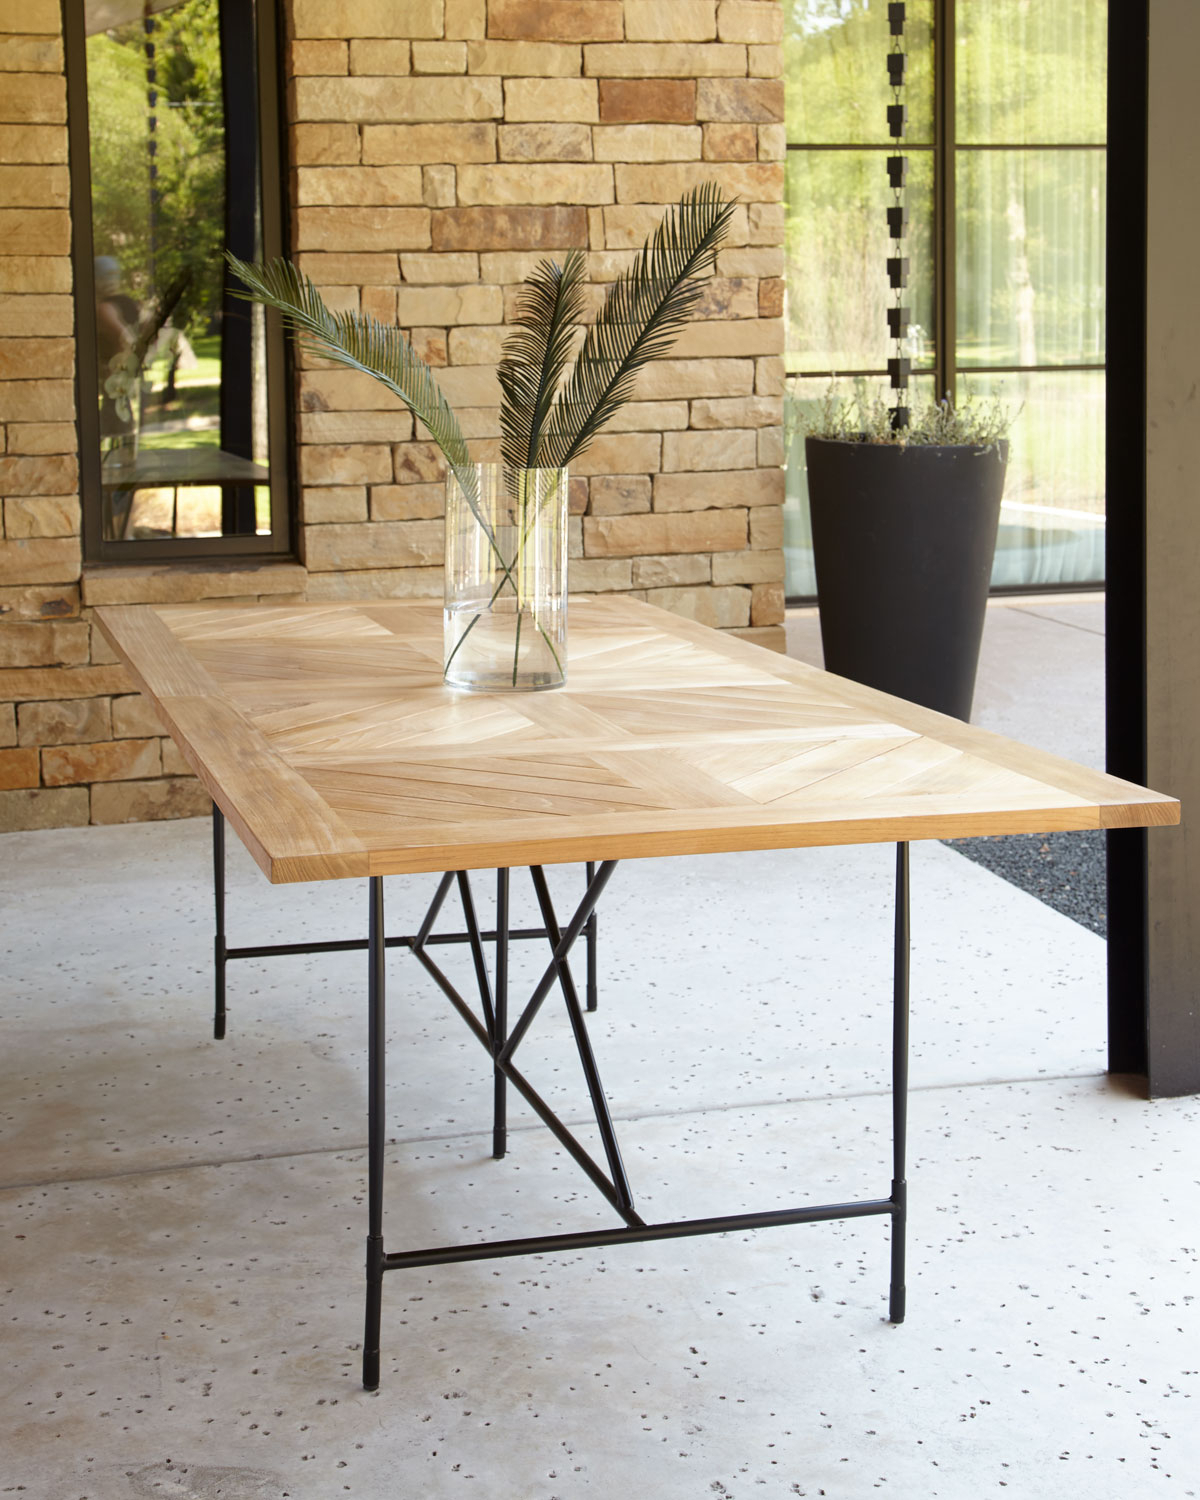 """Well Known Avery Neoclassical 122""""l Outdoor Dining Table Inside Avery Rectangular Dining Tables (View 18 of 25)"""